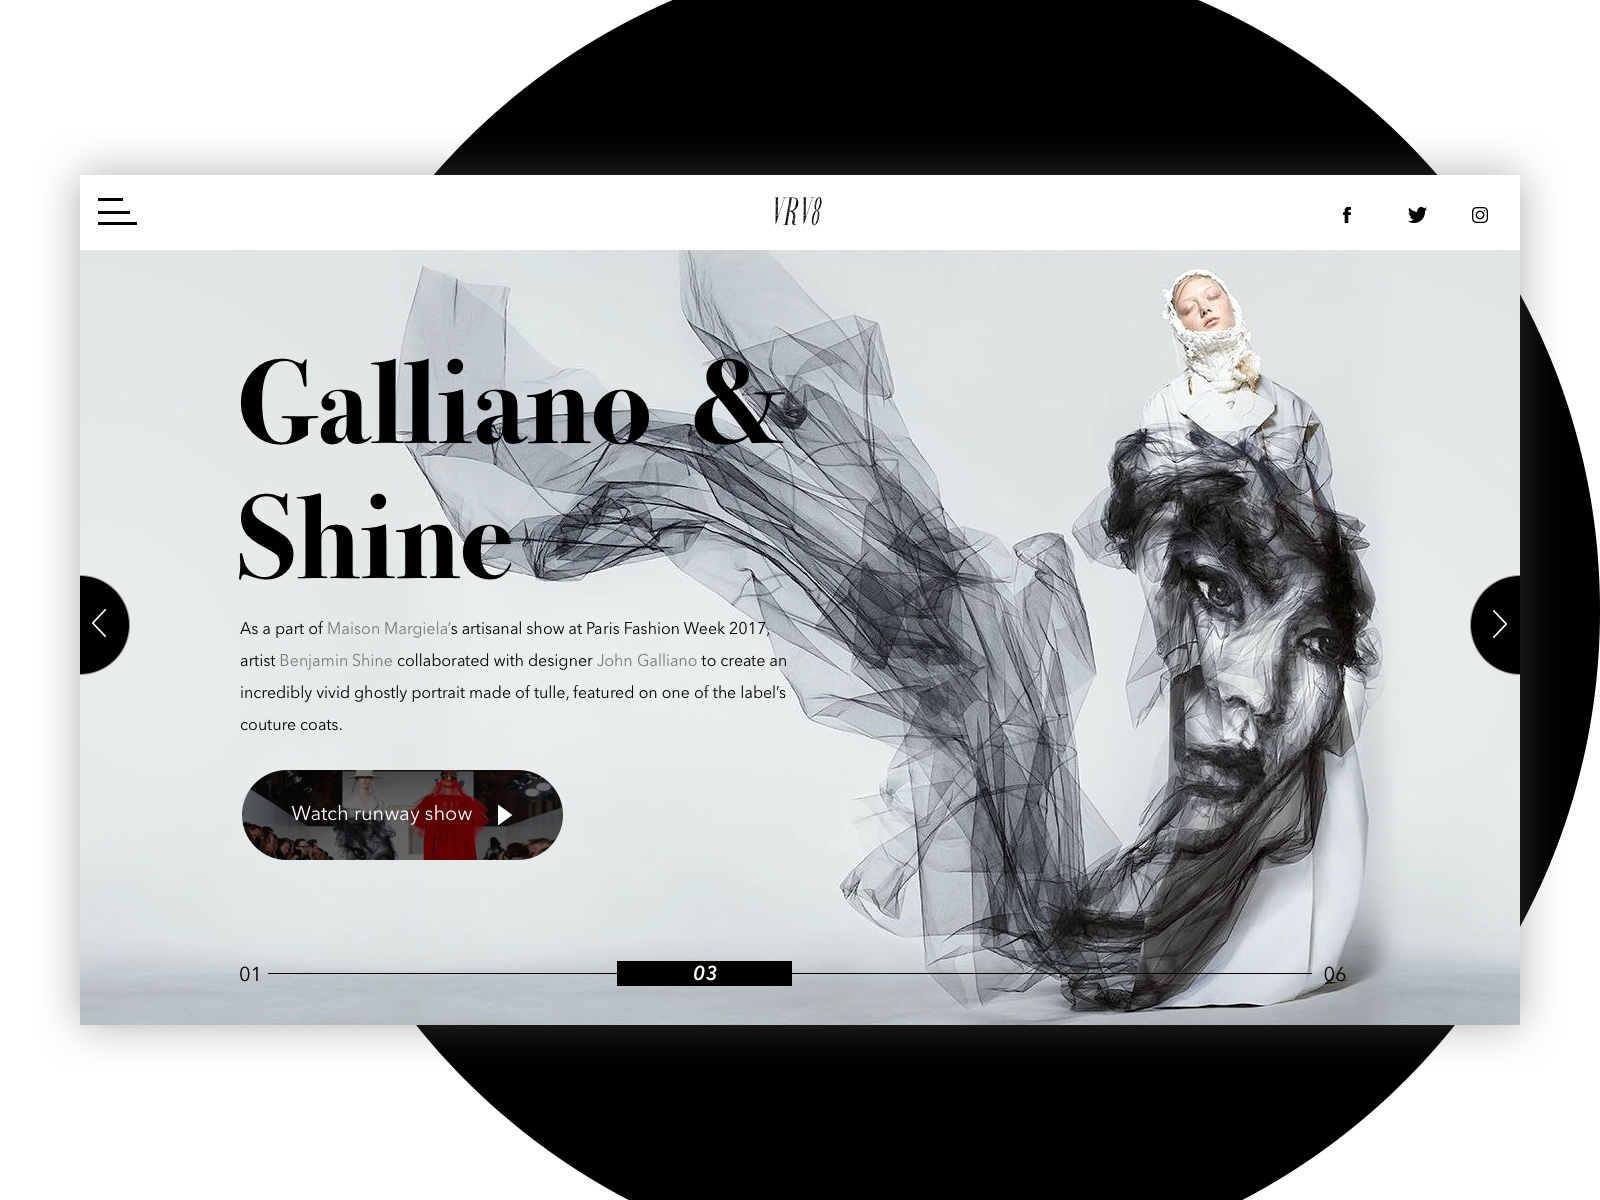 official photos 307f2 538ff Margiela's Galliano x Benjamin Shine concept by Andy Kim on ...